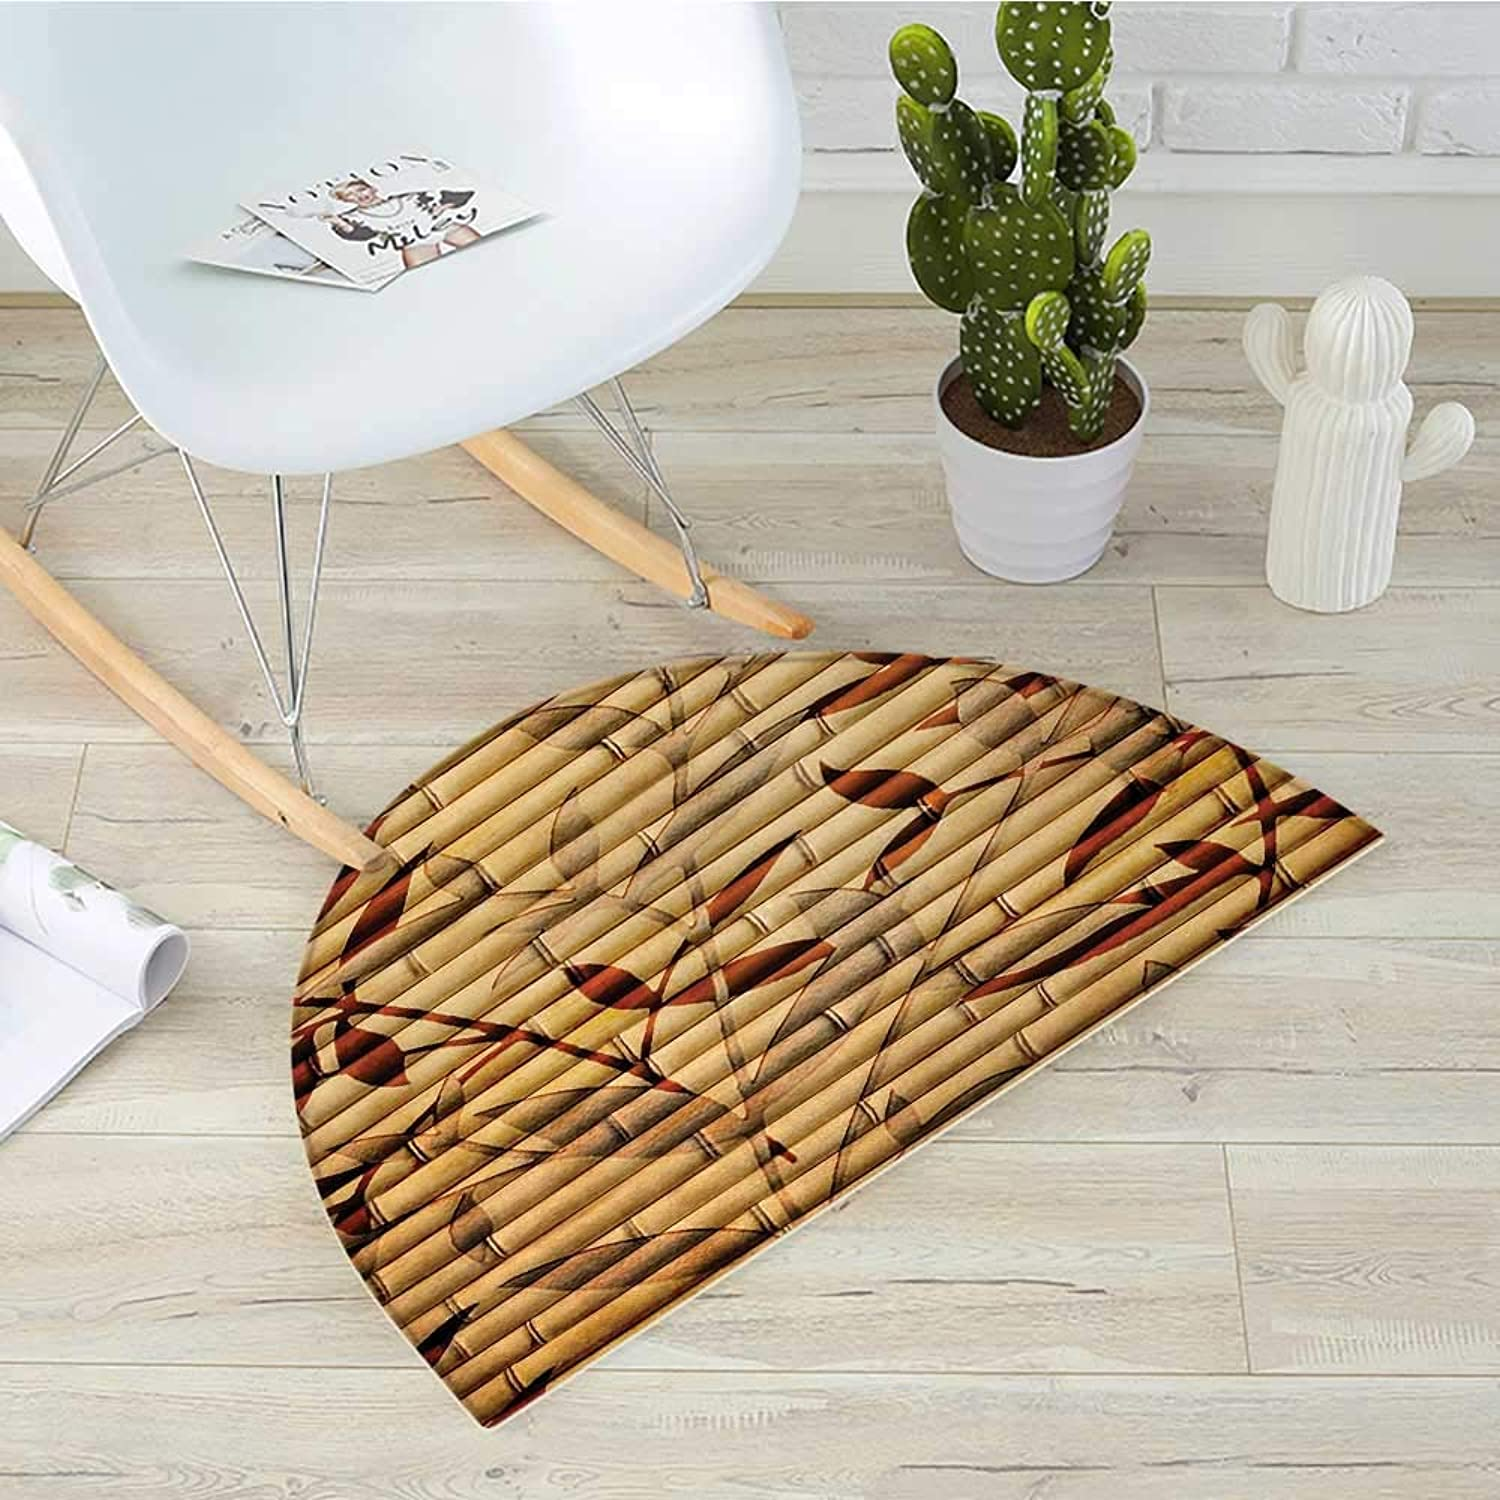 Beige Half Round Door mats Bamboo Stems and Leaf Figures Over It Spiritual Asian Elements Bohemian Print Bathroom Mat H 31.5  xD 47.2  Brown Tan Beige